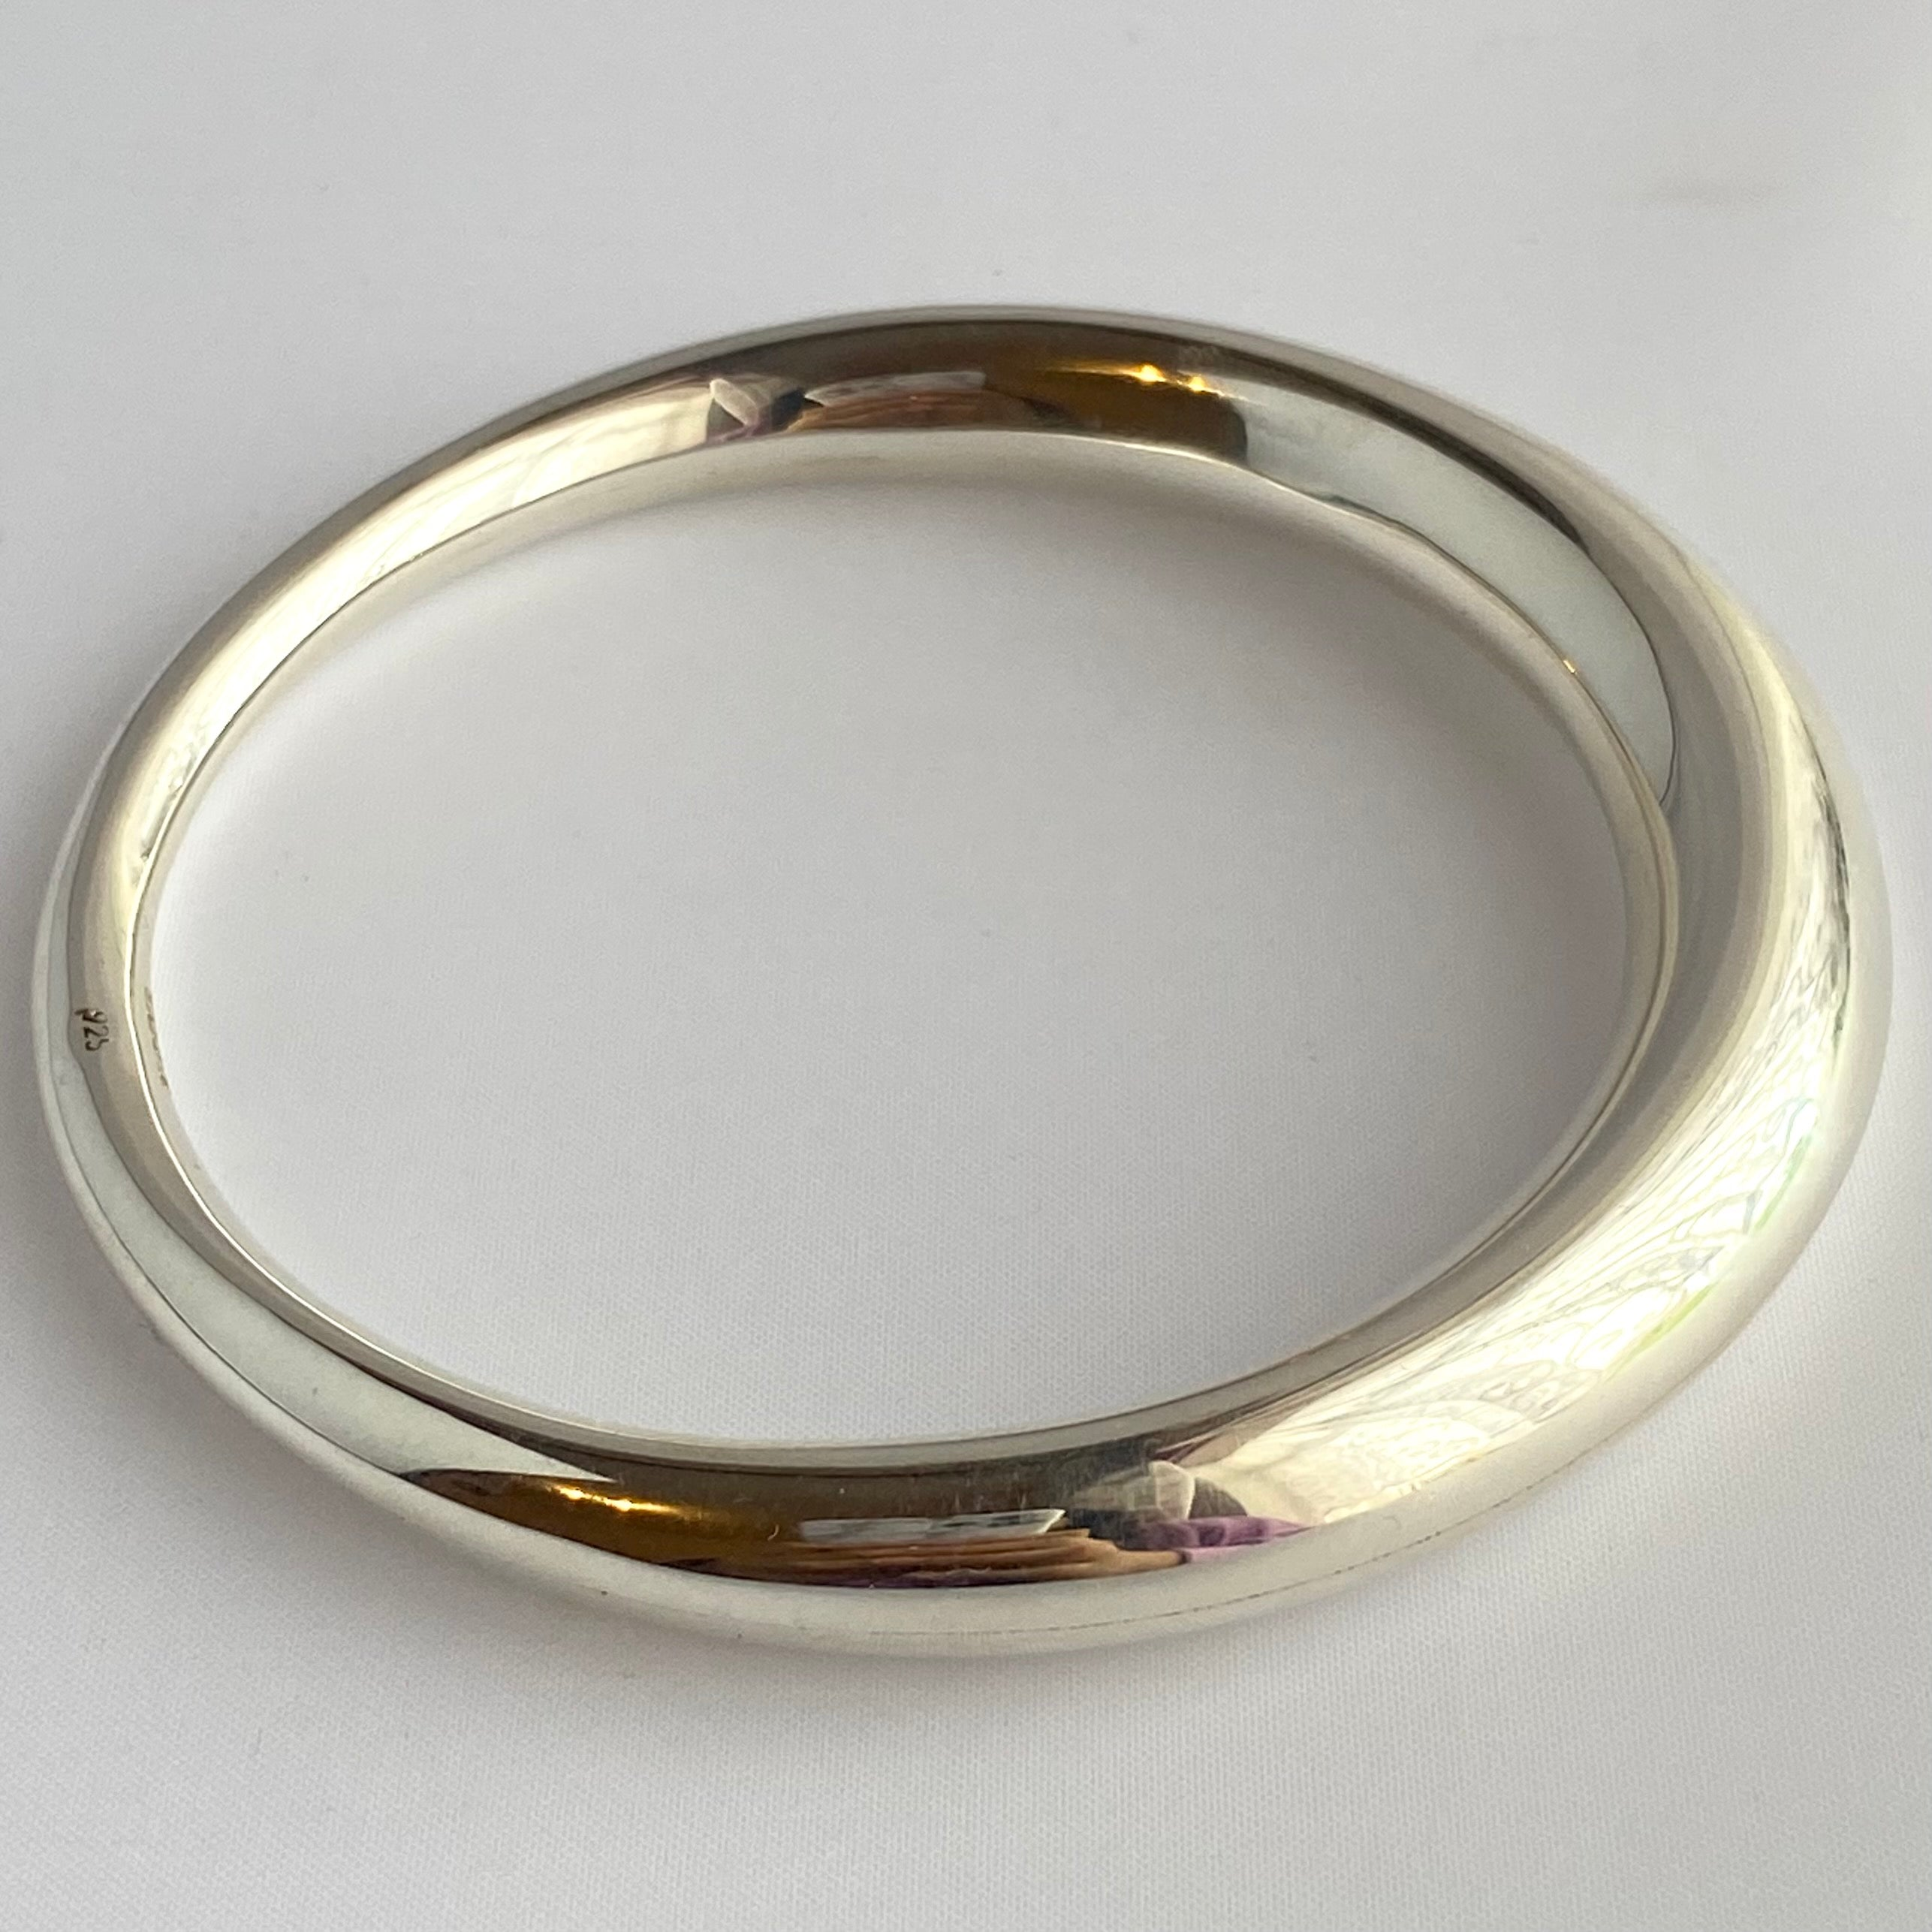 Chunky Silver Round Bangle with a Graduated Tapered Design